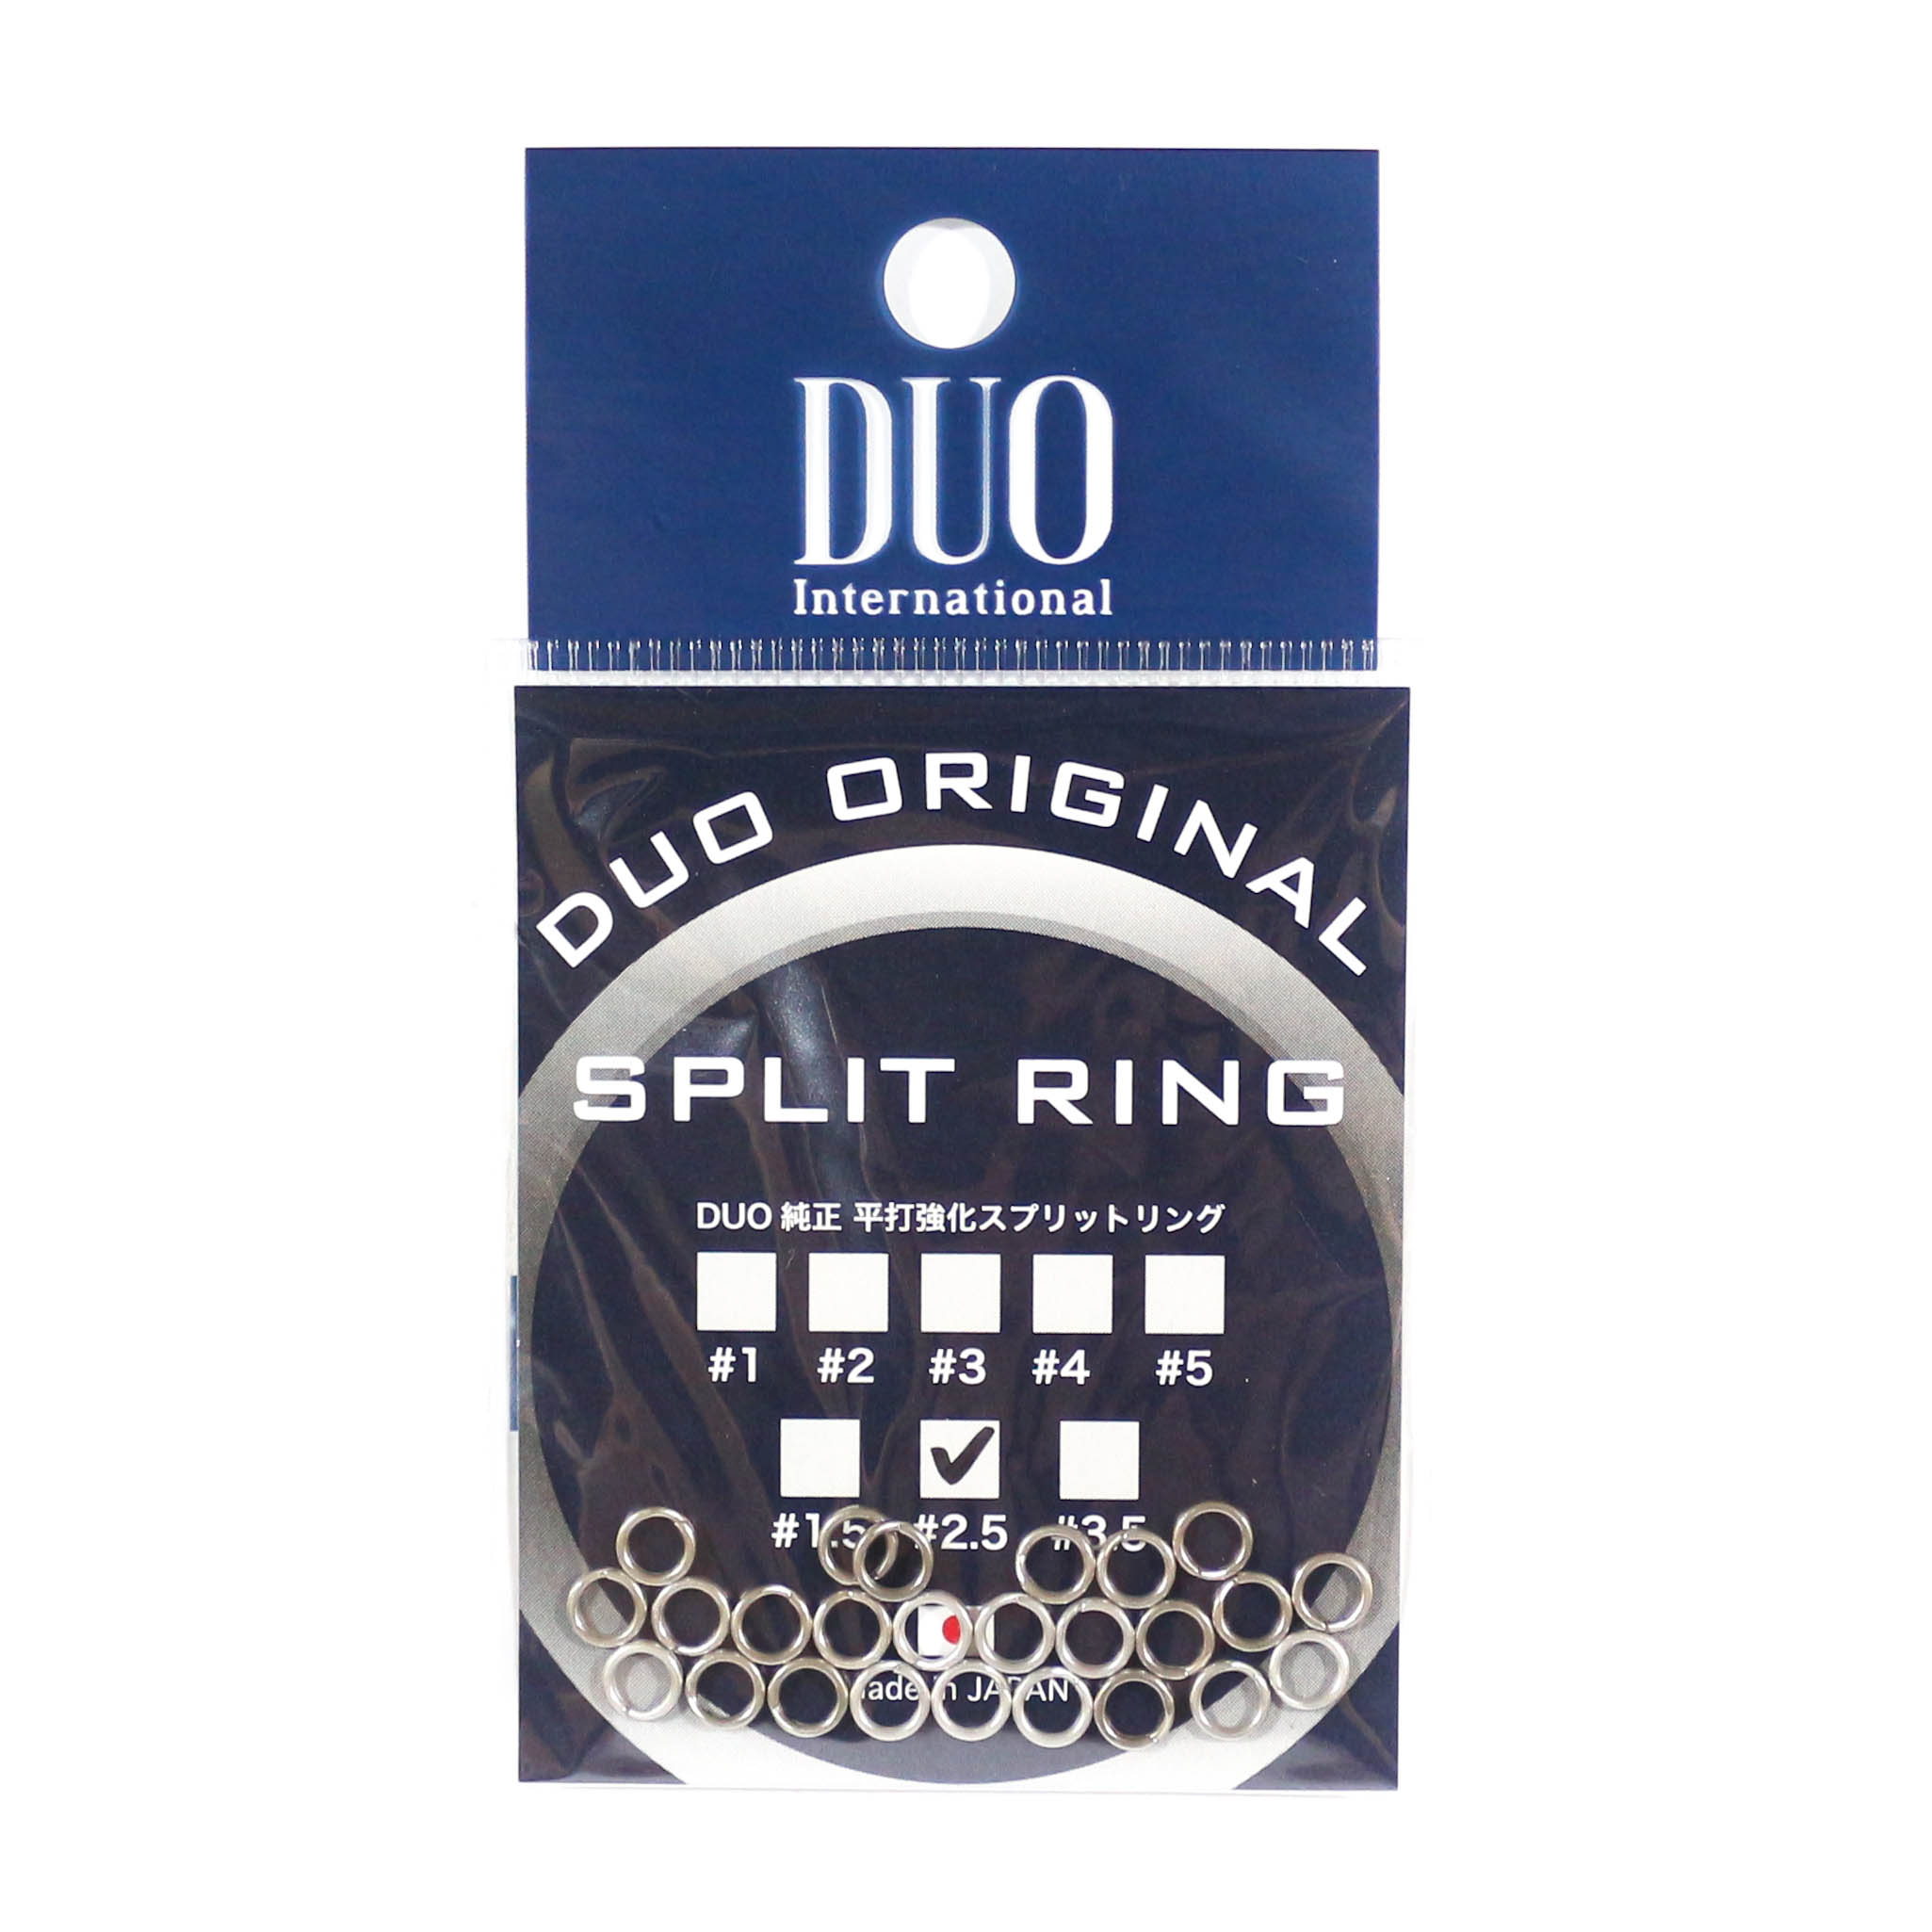 Duo Original Split Rings 25 pieces, Size 2.5 #2.5 (6651)